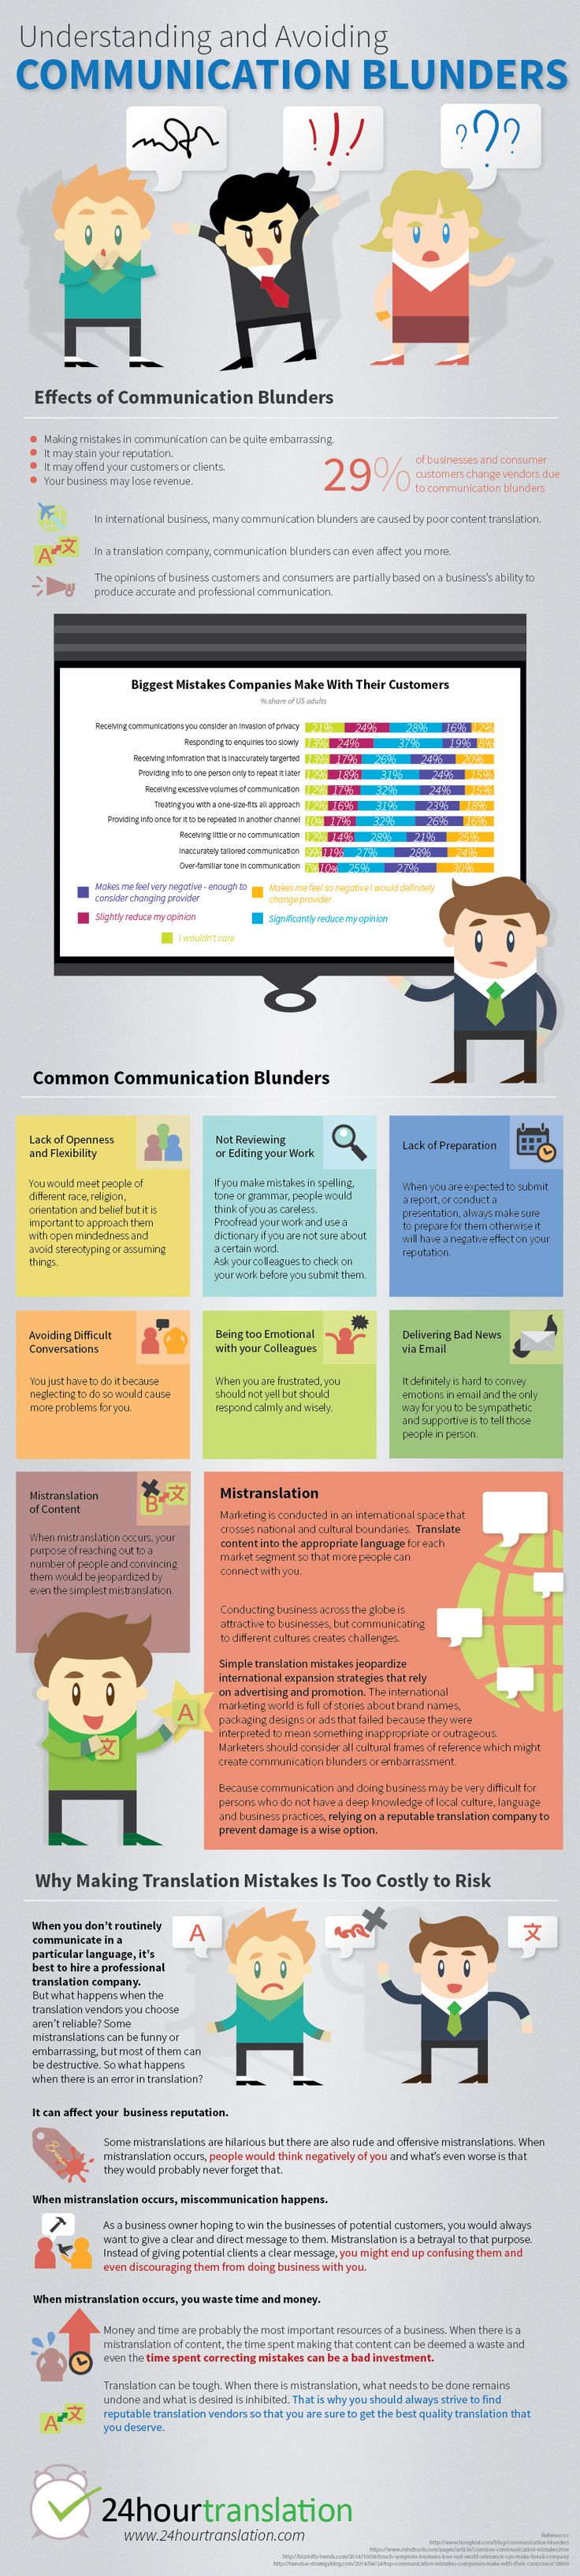 How to Avoid Communication Mistakes For A More Successful Marketing